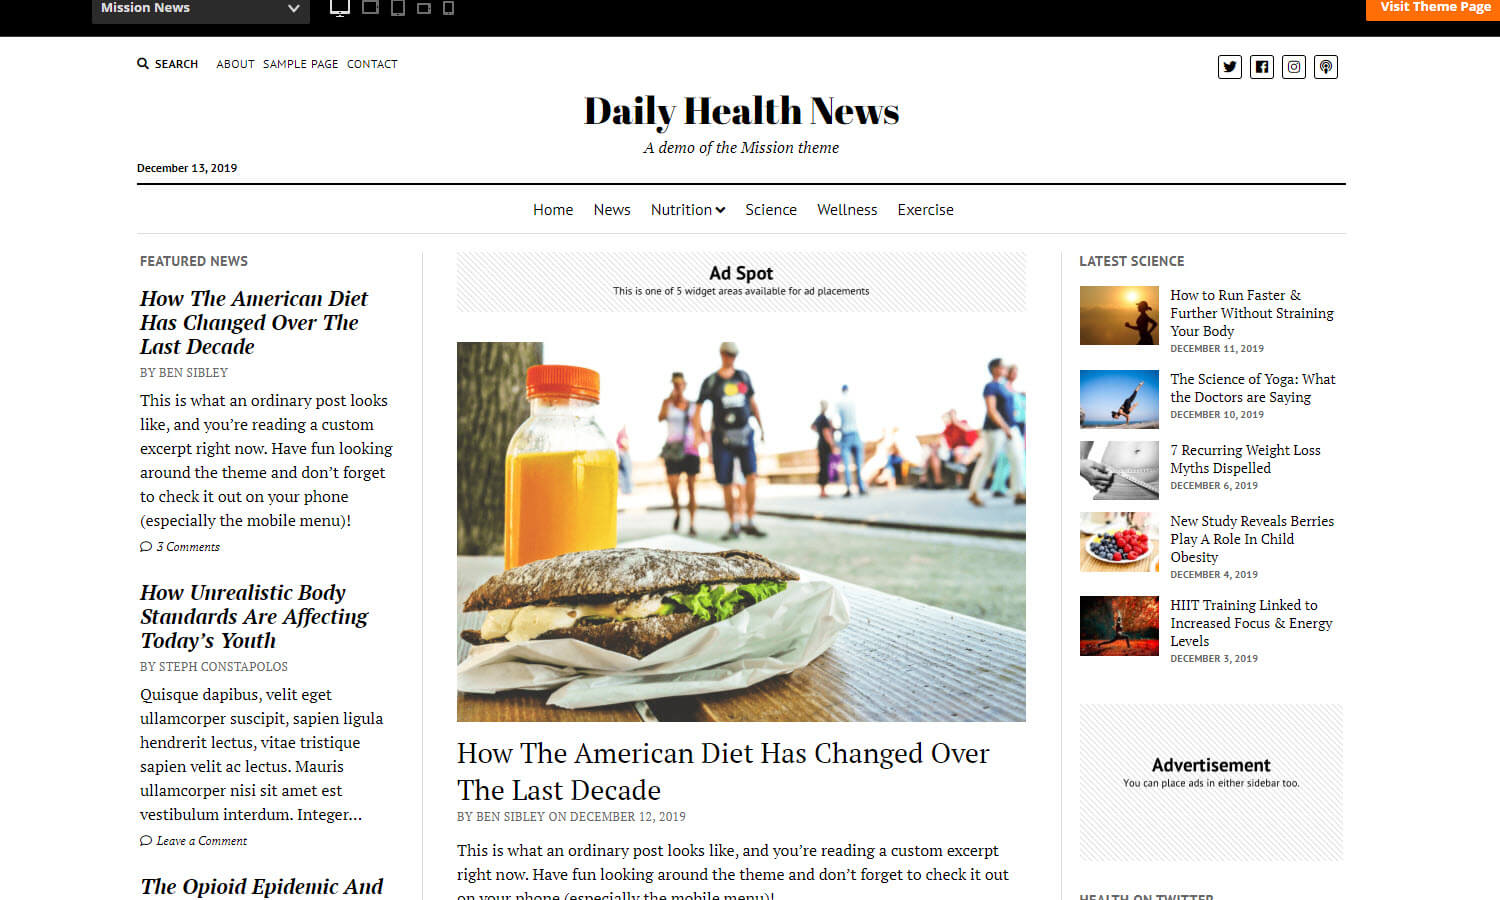 Mission News Theme screenshot